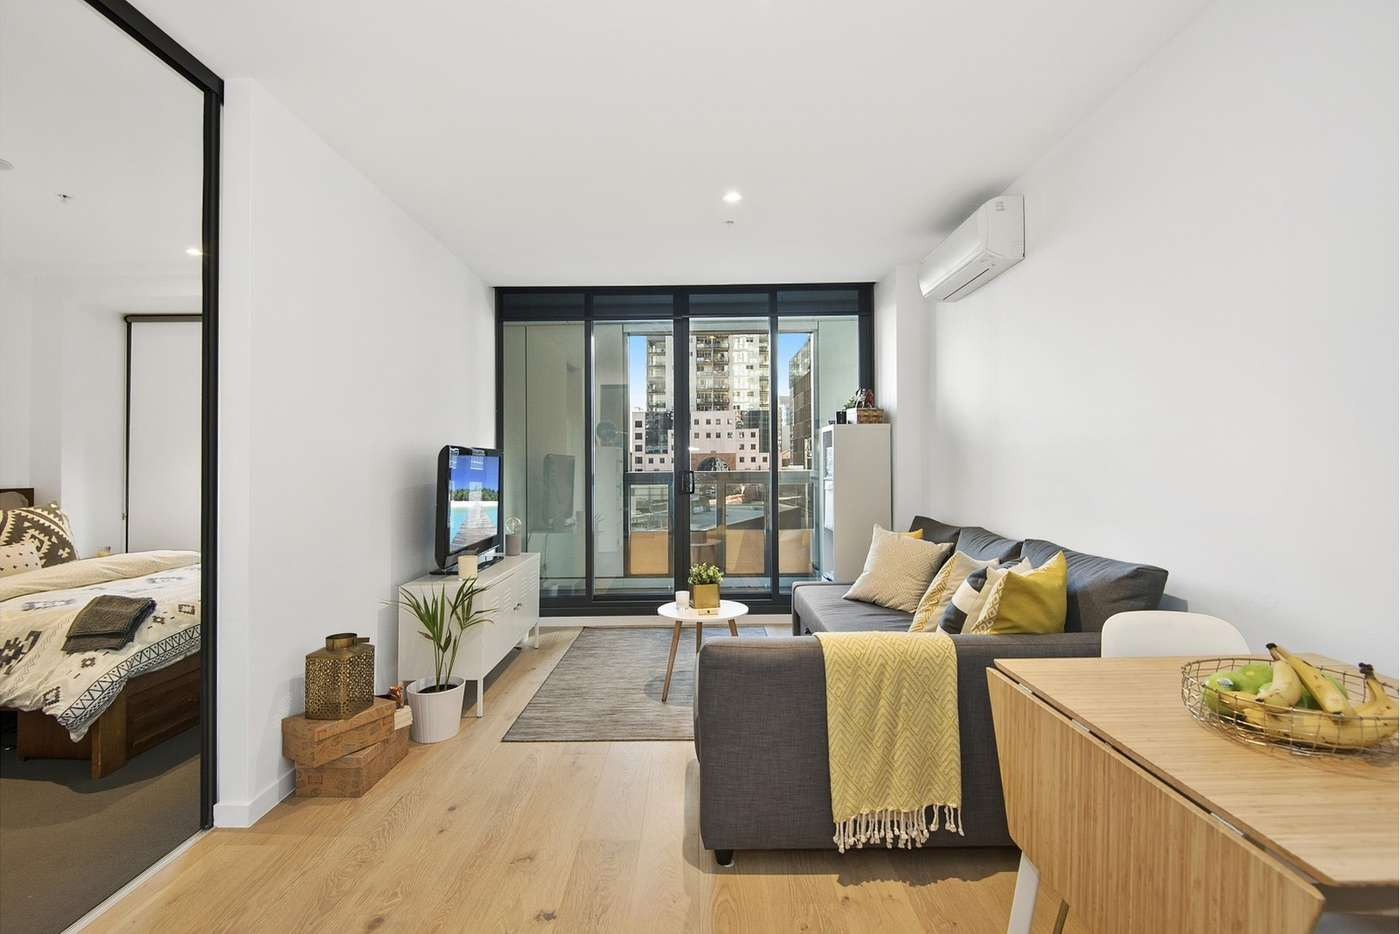 Main view of Homely apartment listing, 206/33 Rose Lane, Melbourne VIC 3000